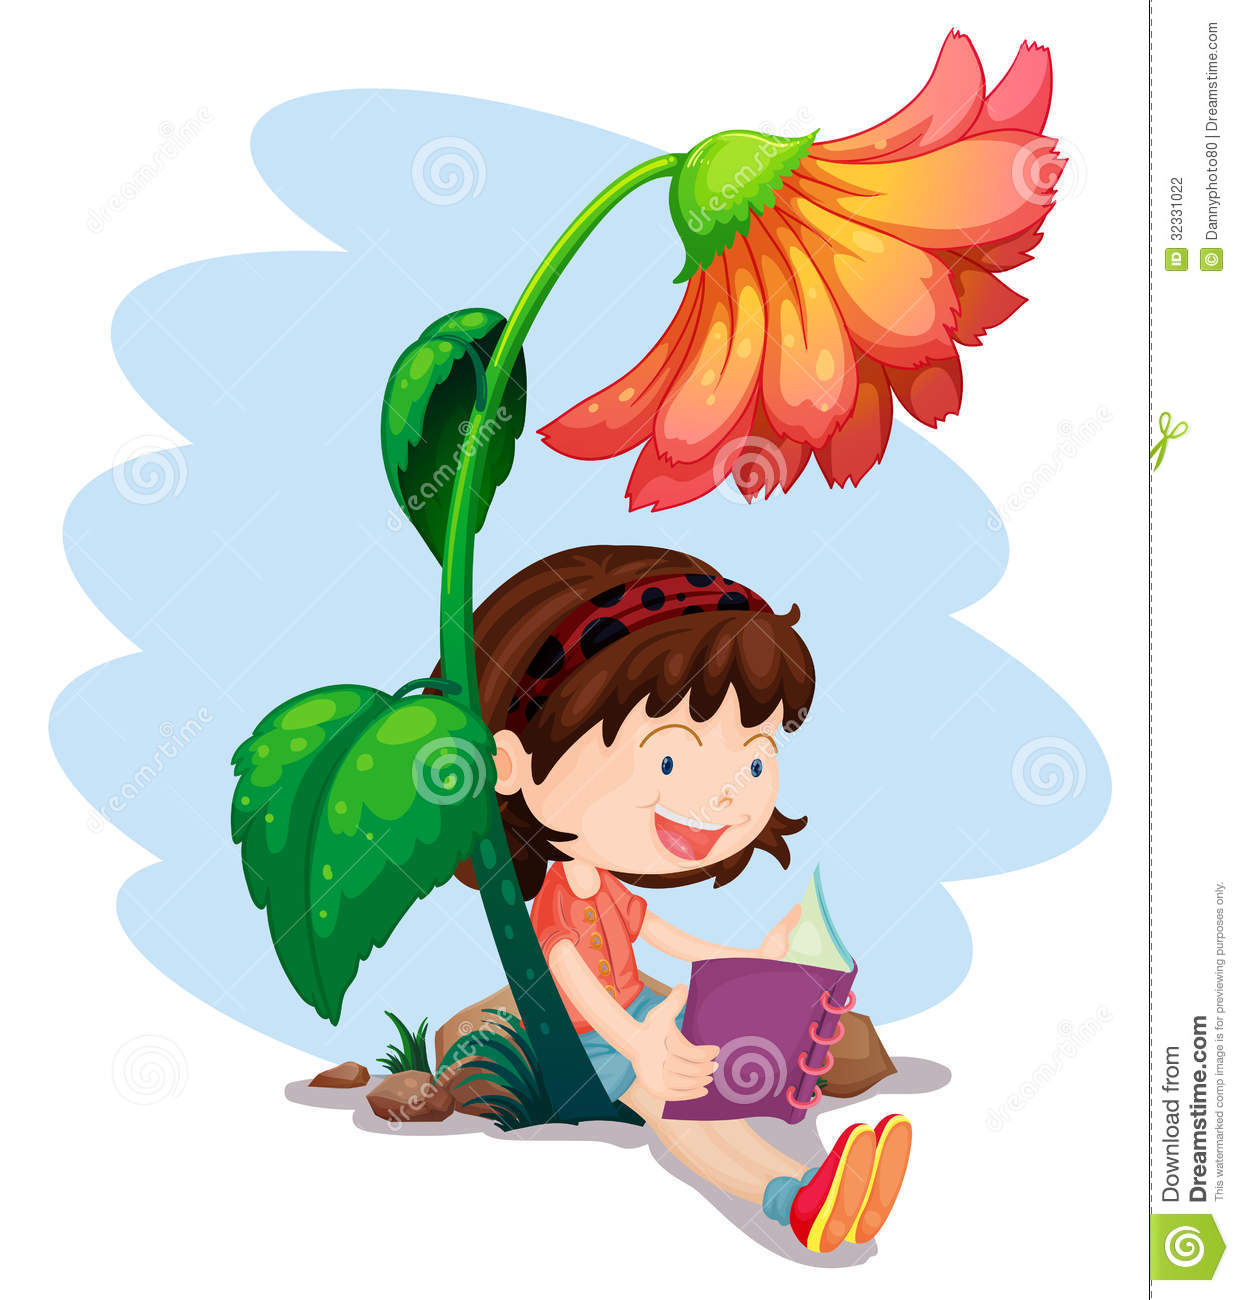 Girl In A Tree Reading A Book Wallpaper A Girl Reading A Book Below The Giant Flower Stock Vector